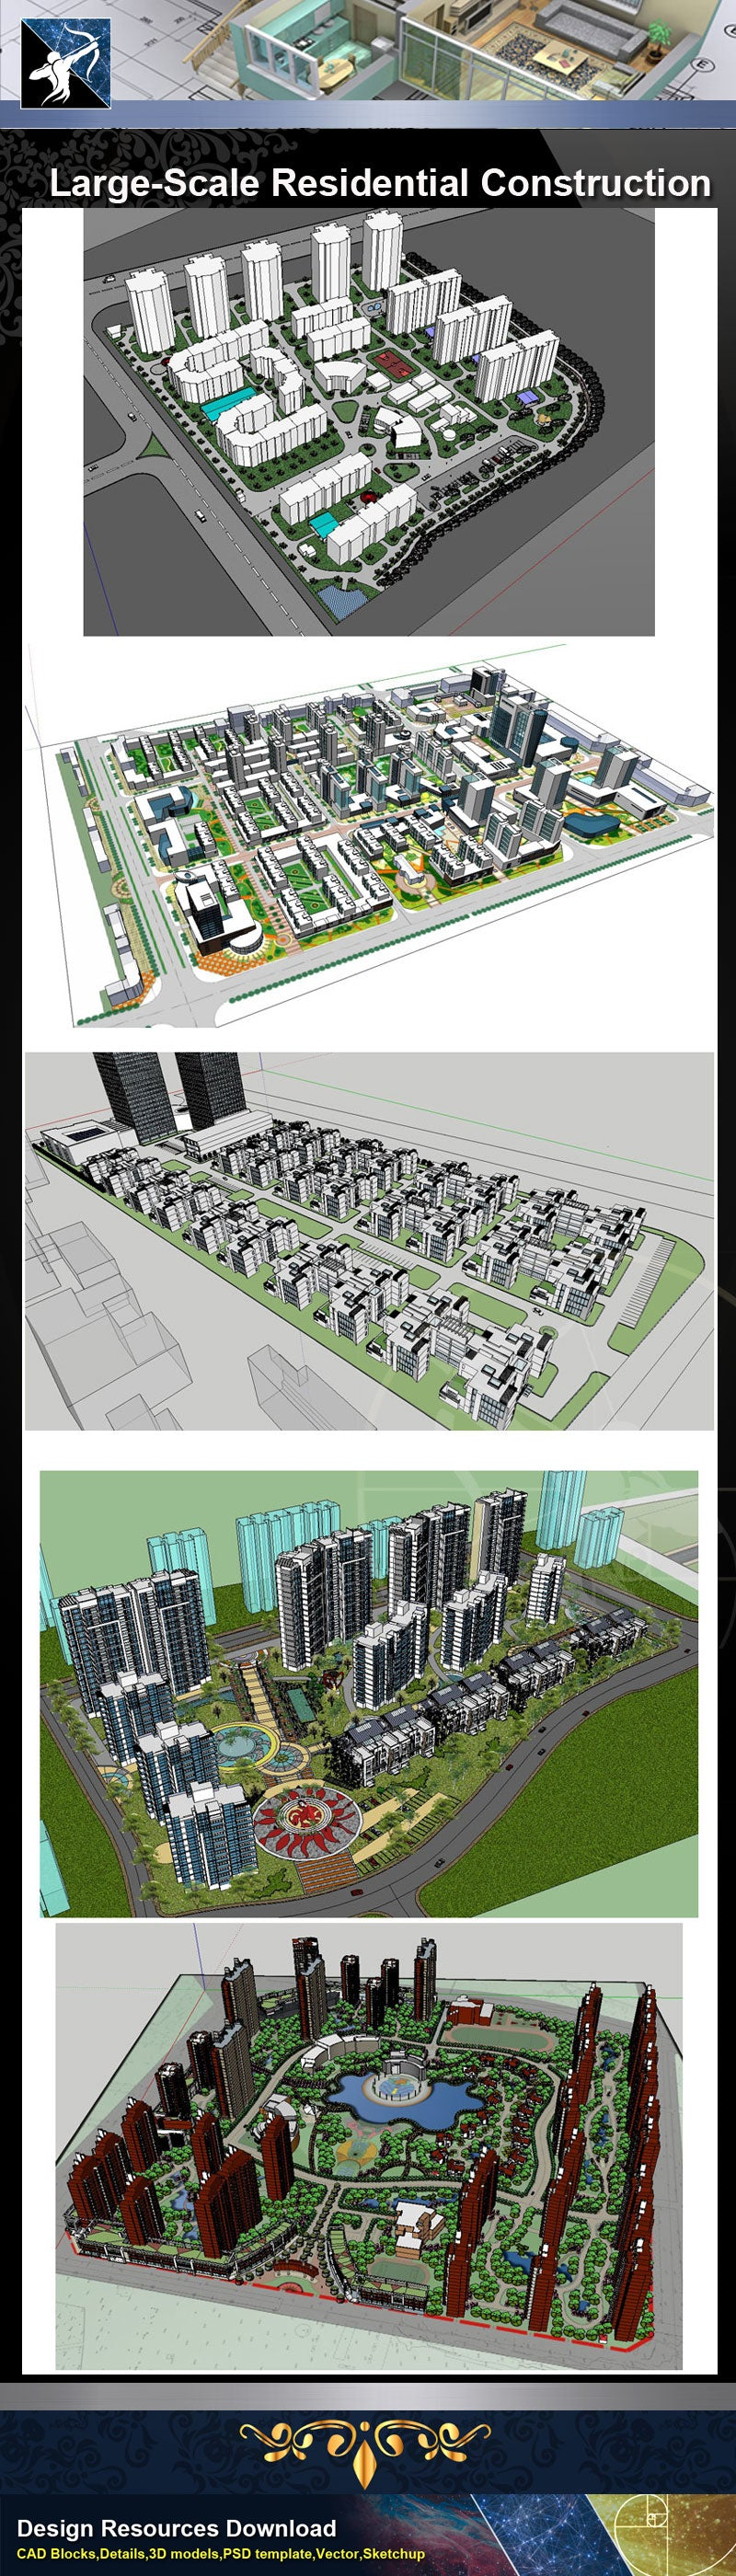 ★Sketchup 3D Models-Large-Scale Residential Construction and Landscape Sketchup Models